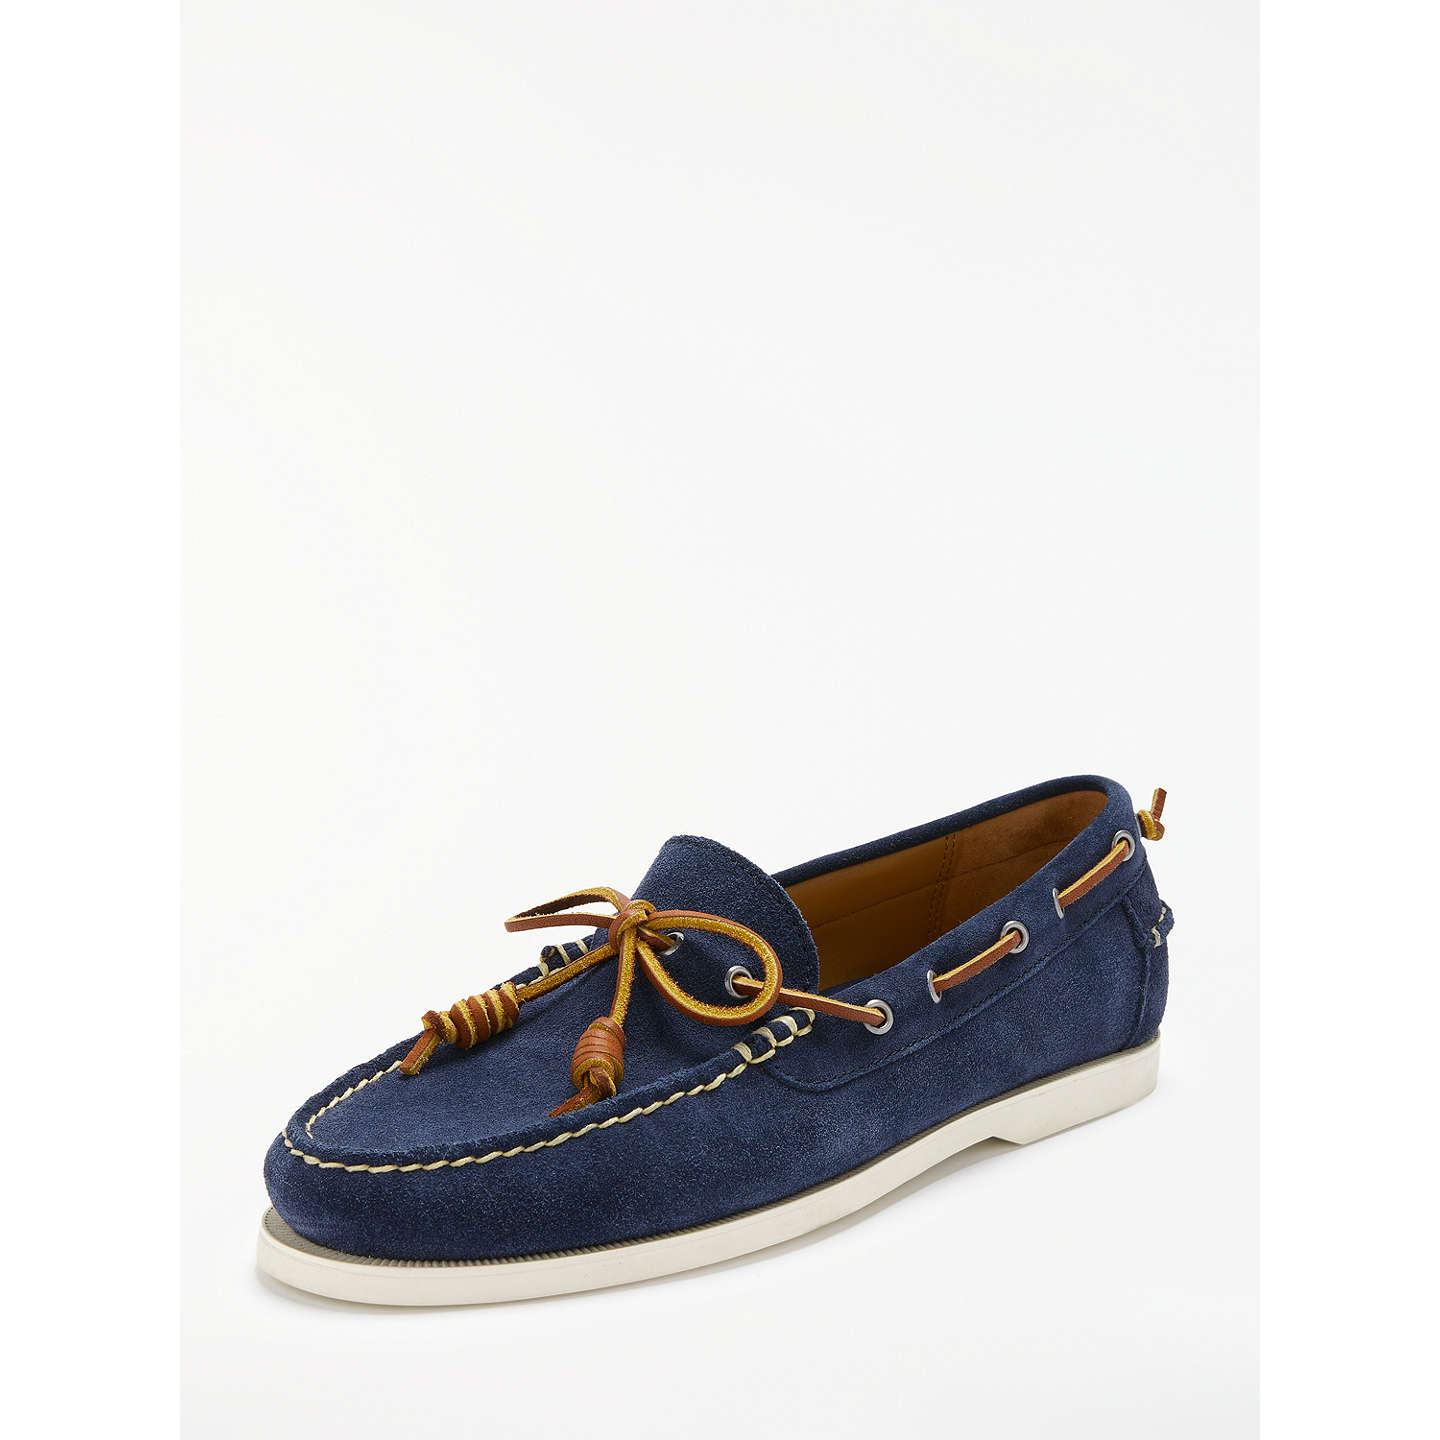 Geniue Stockist Online MILLARD - Boat shoes - polo tan Shopping Online Original Buy Cheap Very Cheap hA7NK